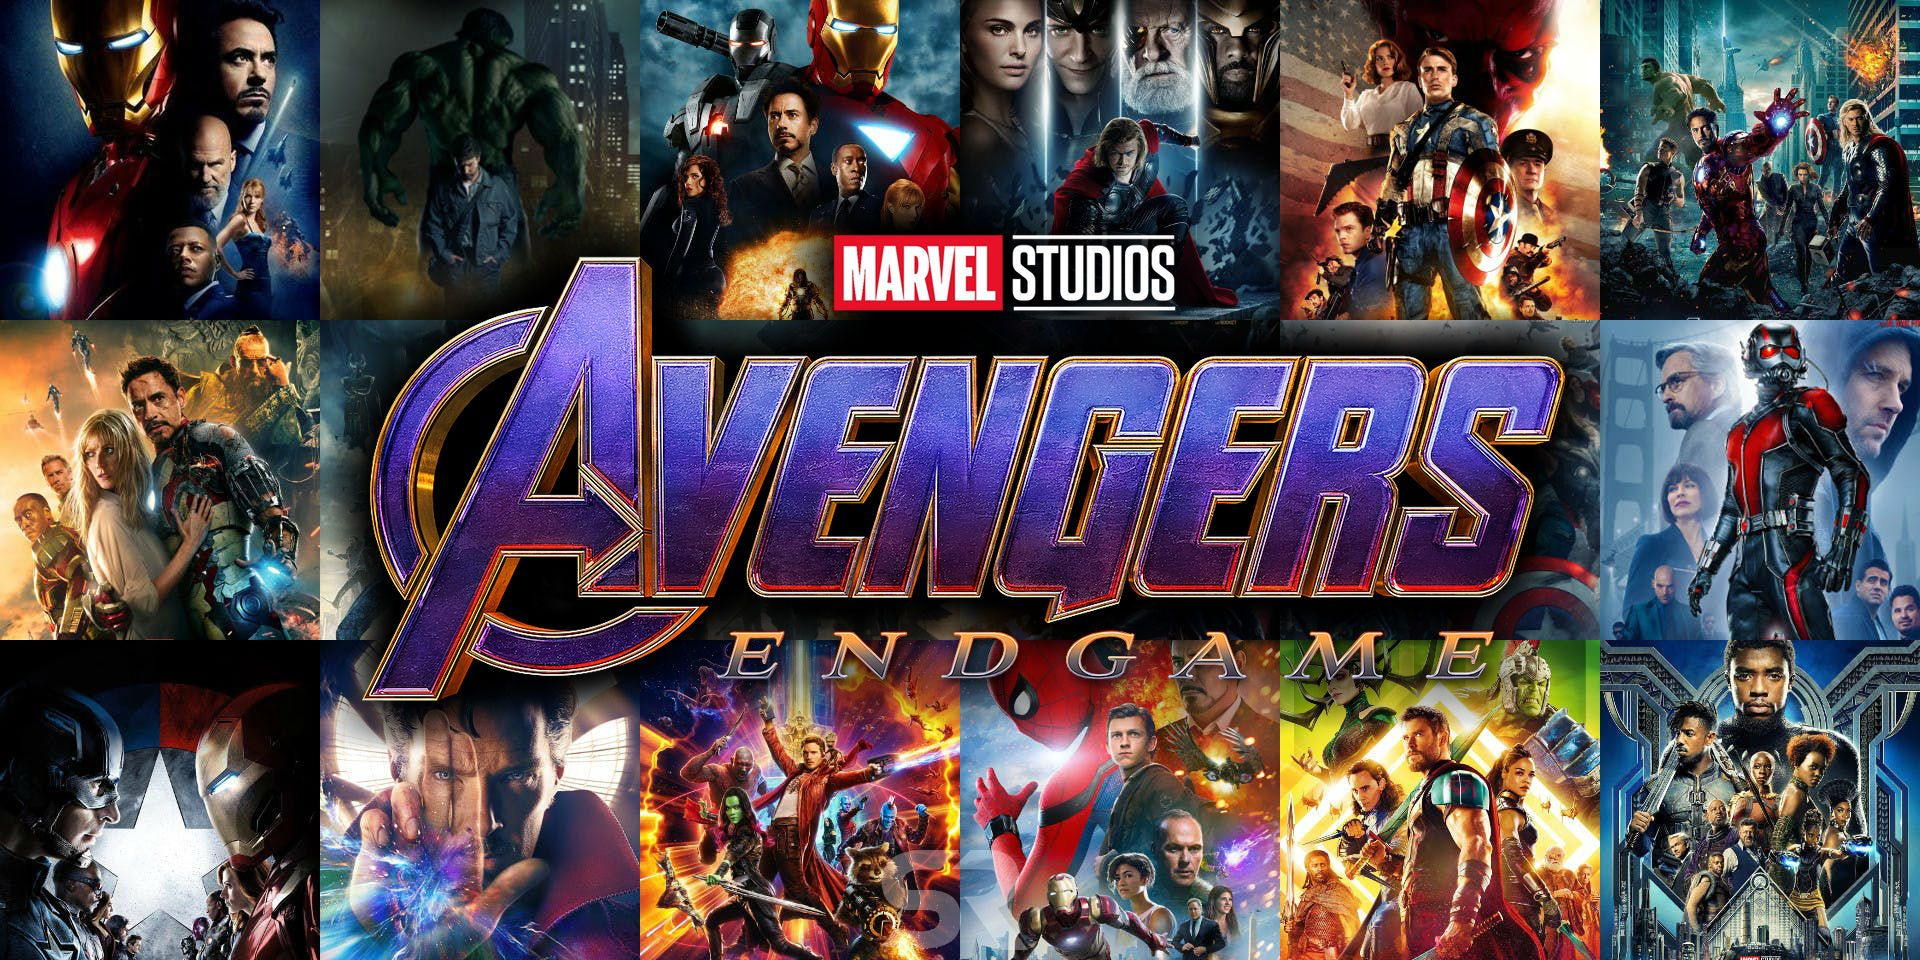 Avengers: Endgame will be the culmination of 10 years of MCU